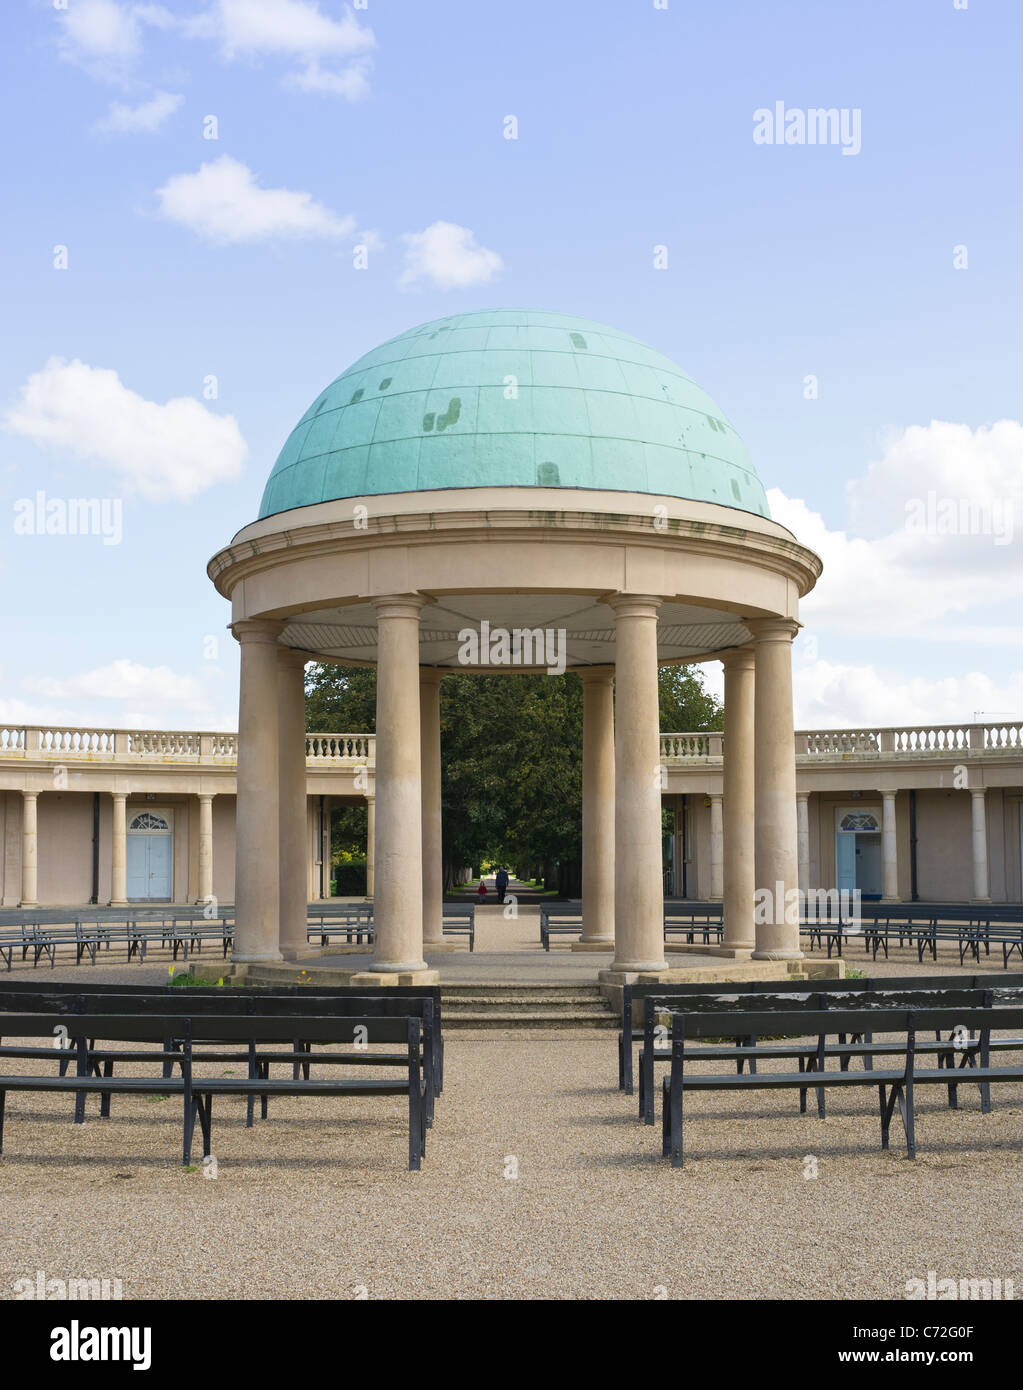 Bandstand at Eaton Park Norwich, Norfolk. Built during the 1930's. - Stock Image